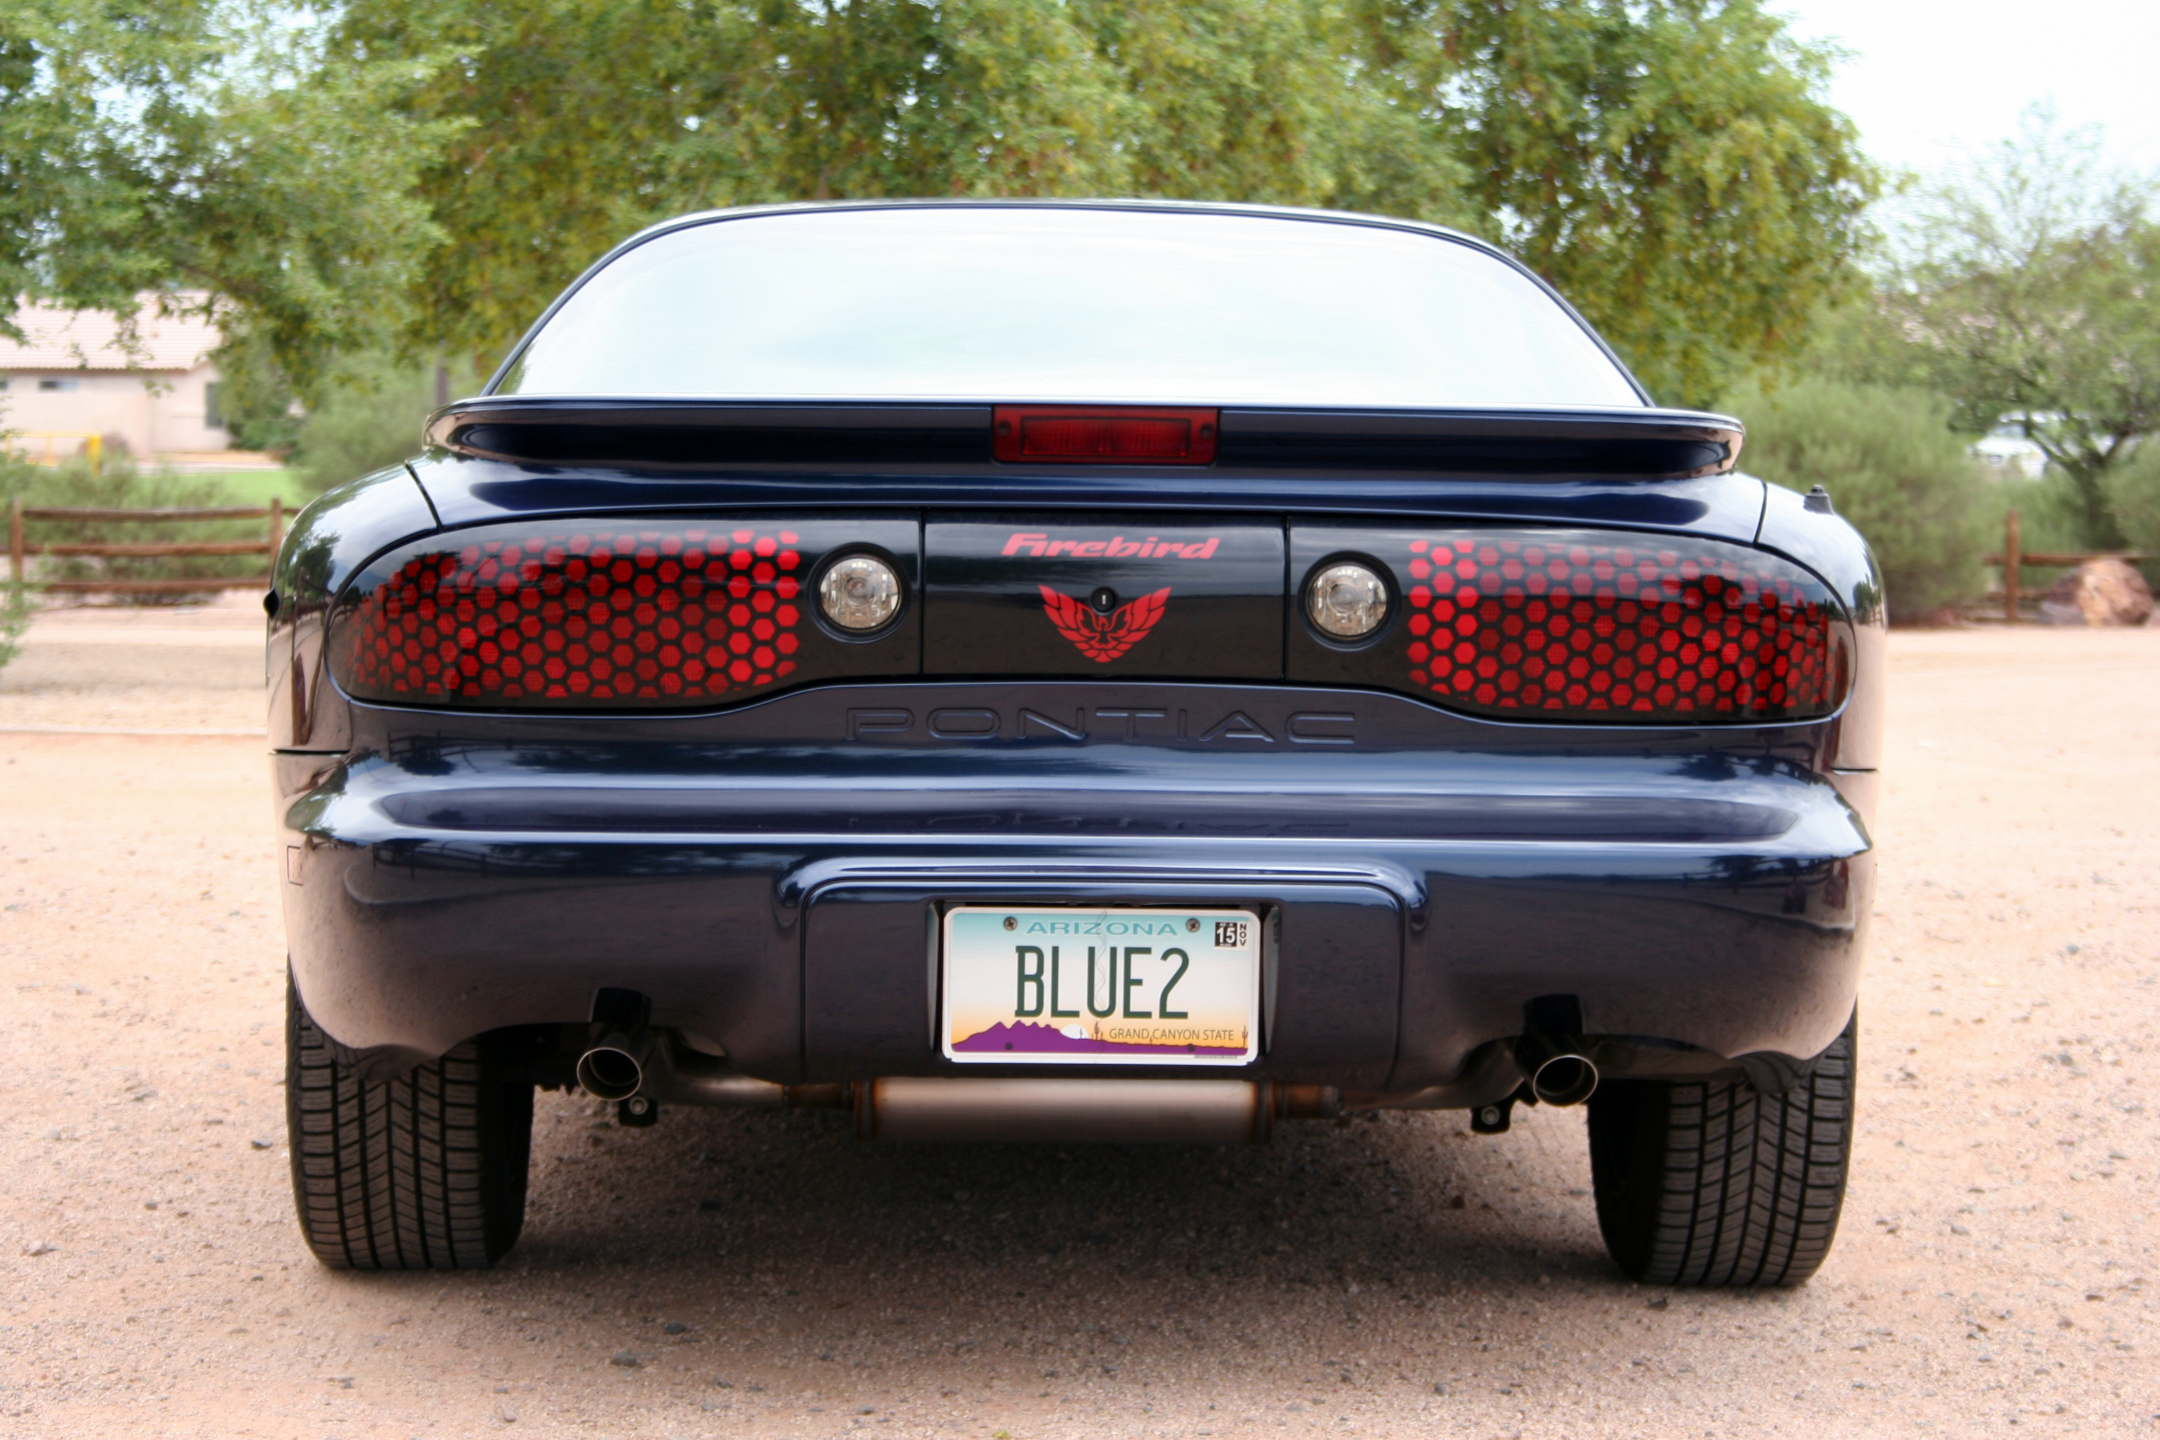 Electricblue2 2002 Pontiac Firebird Specs Photos Modification Info Wiring For Monsoon Stereo System 19149364 19149365